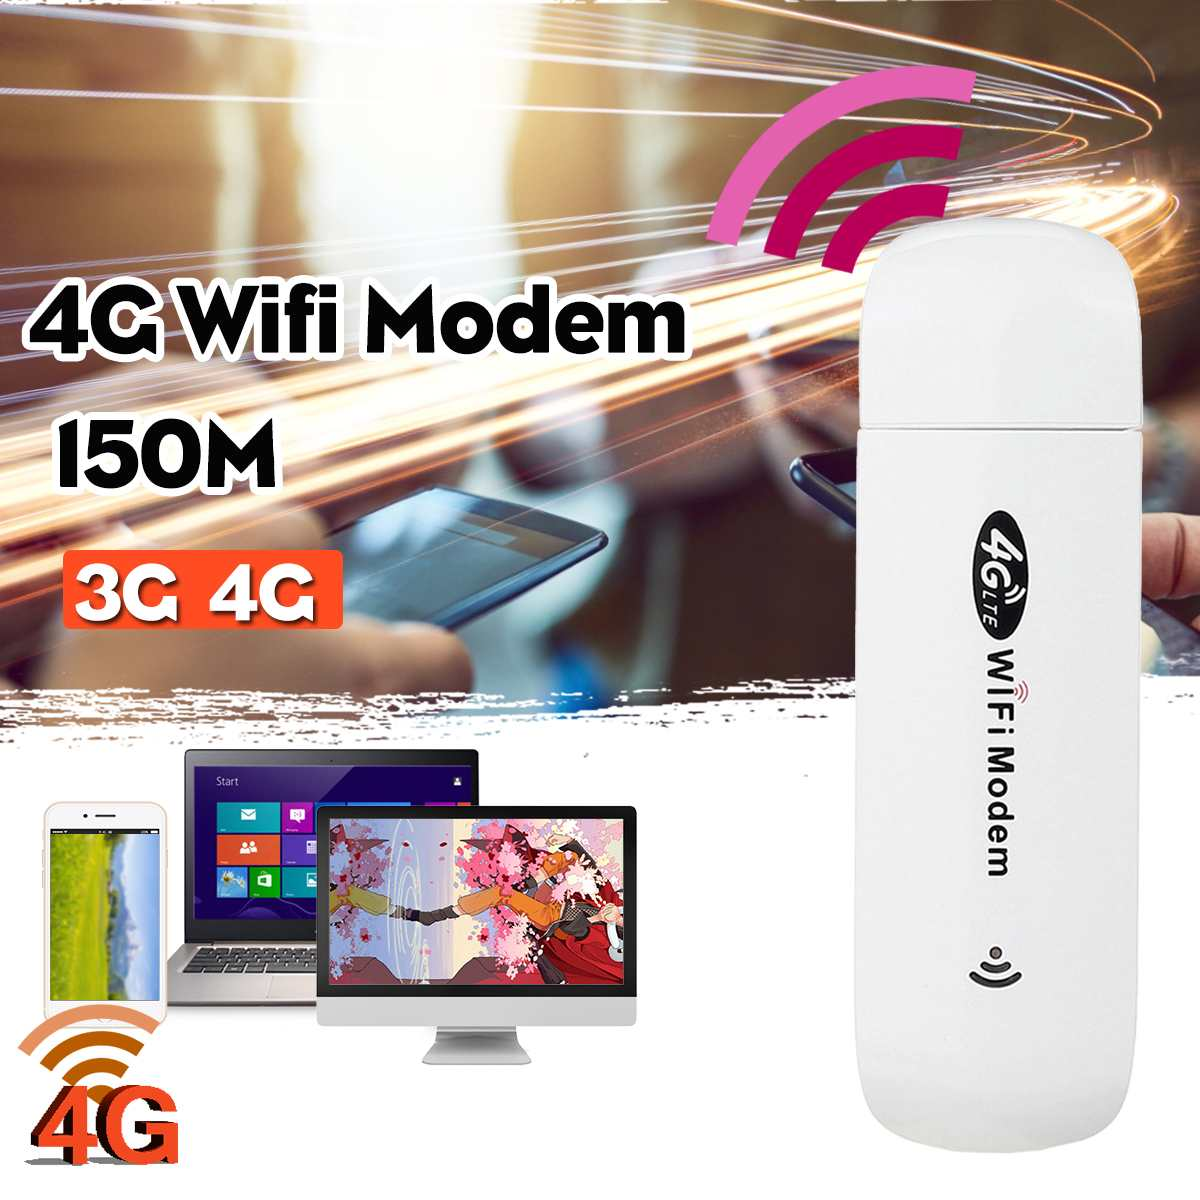 150Mbps Wireless 4G LTE USB Modem Wifi Router Encryption Mobile Hotspot Router FDD:B1/3/5 TDD:B38/39/40/41 WCDMA:B1